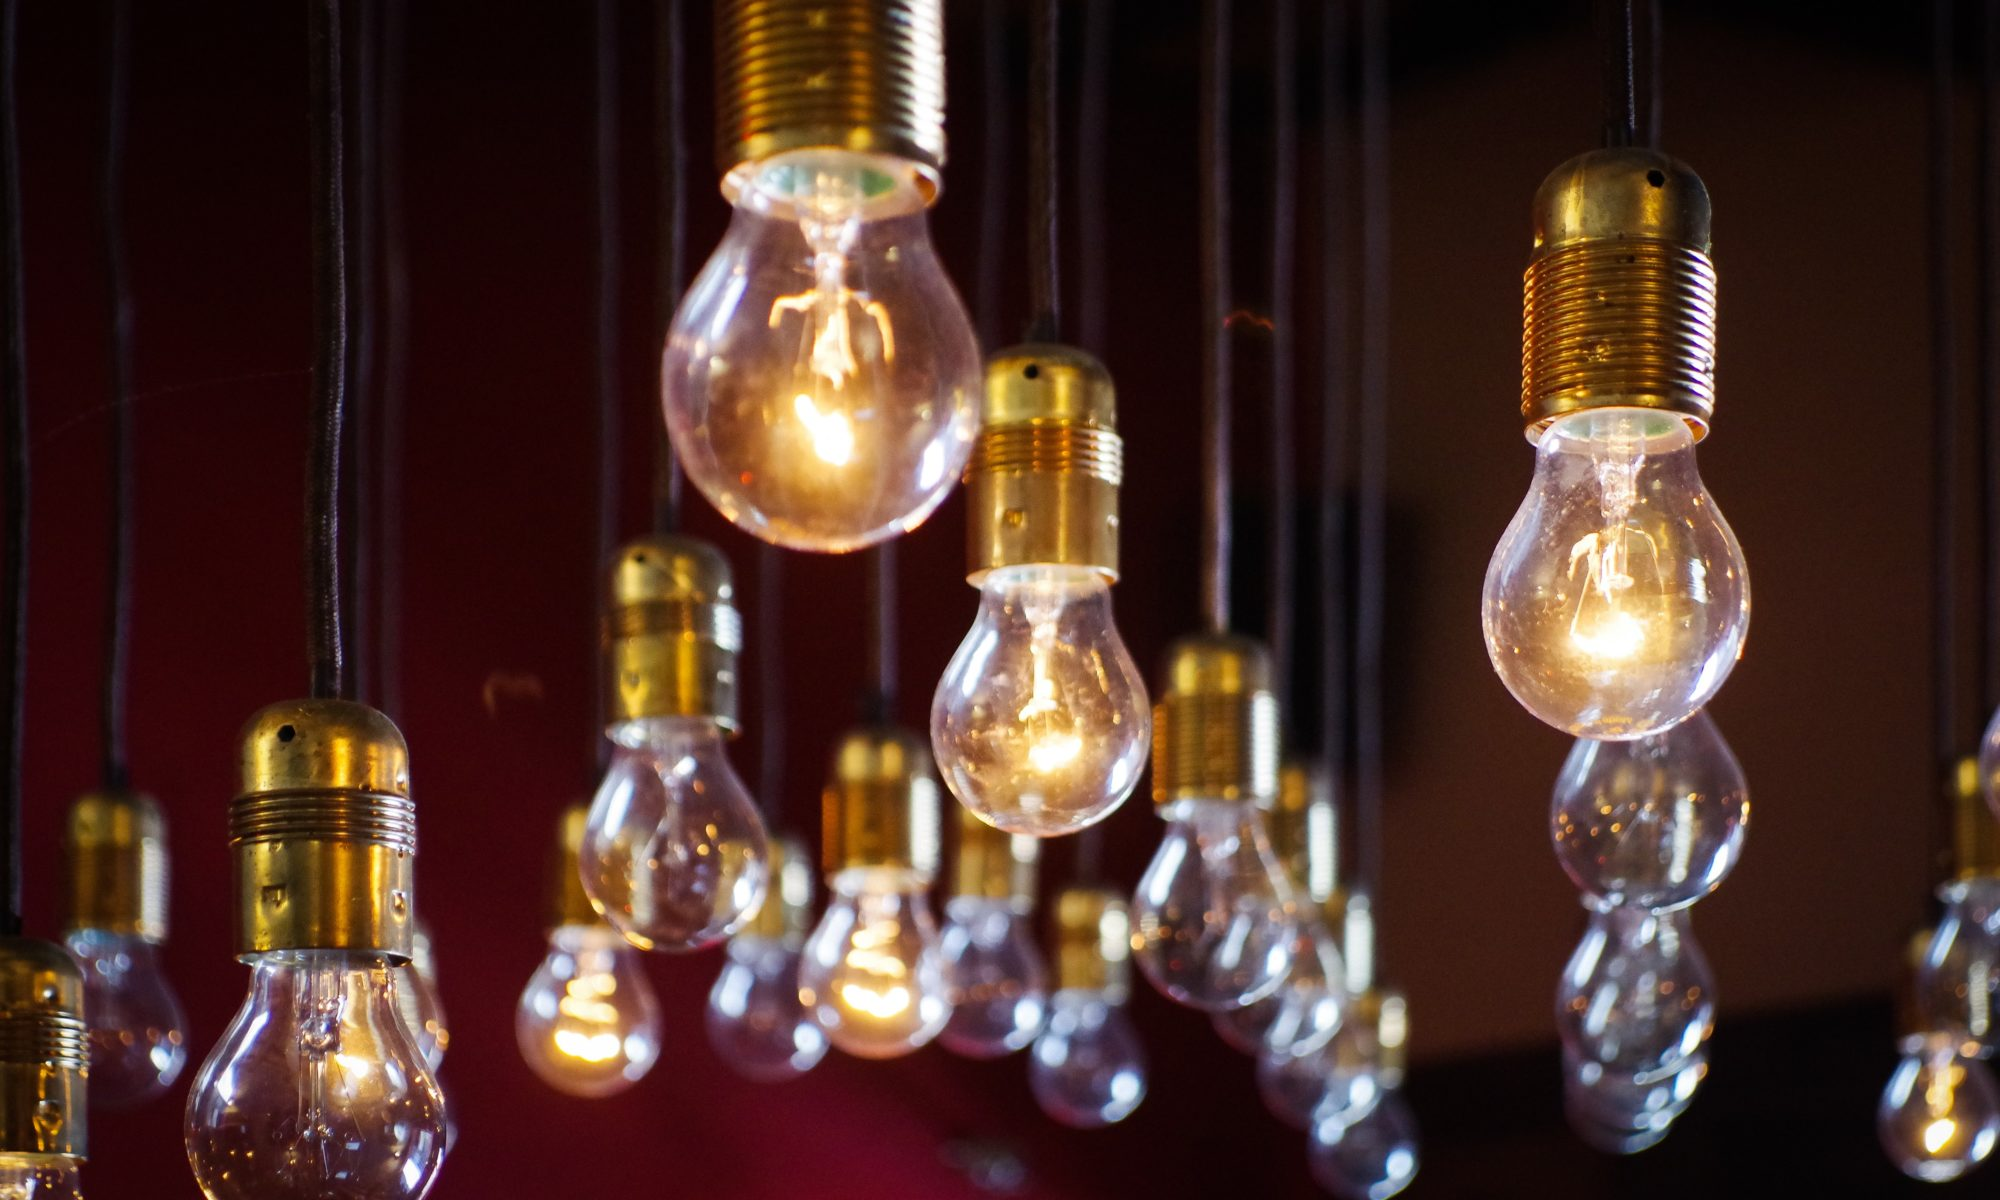 Lightbulbs ambient (PC: Diego Zarpellon)